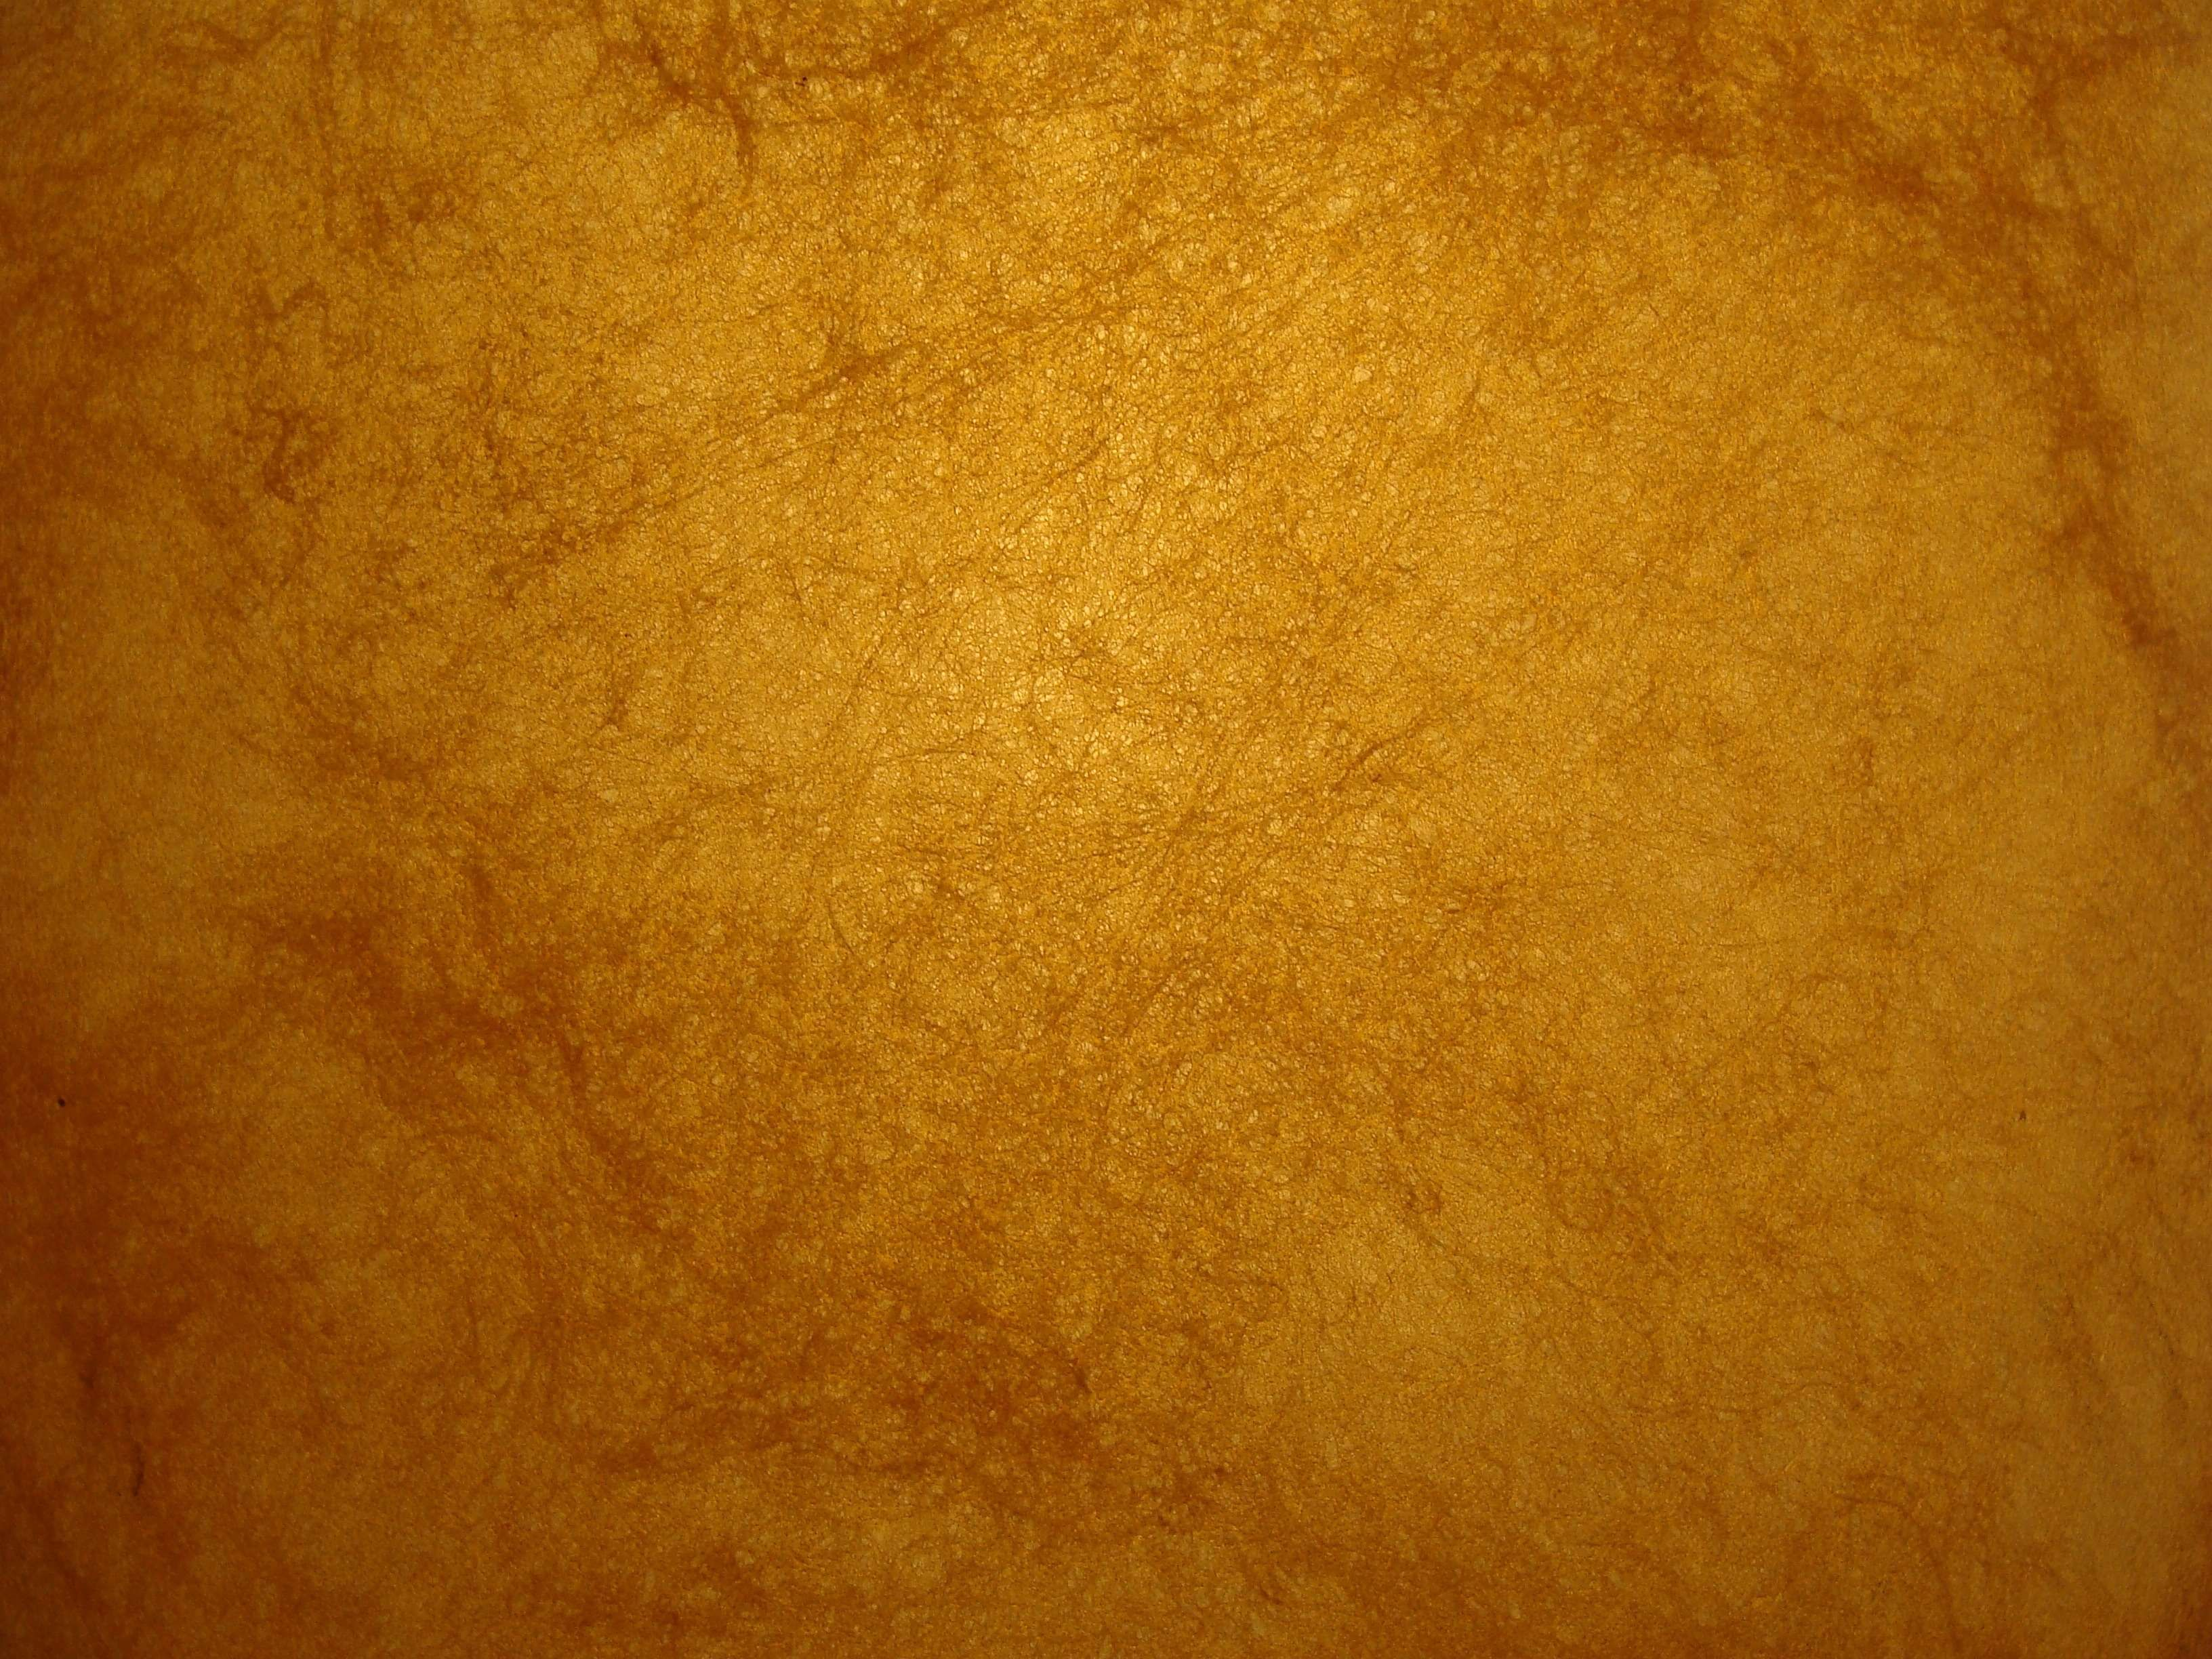 gold golden the background texture